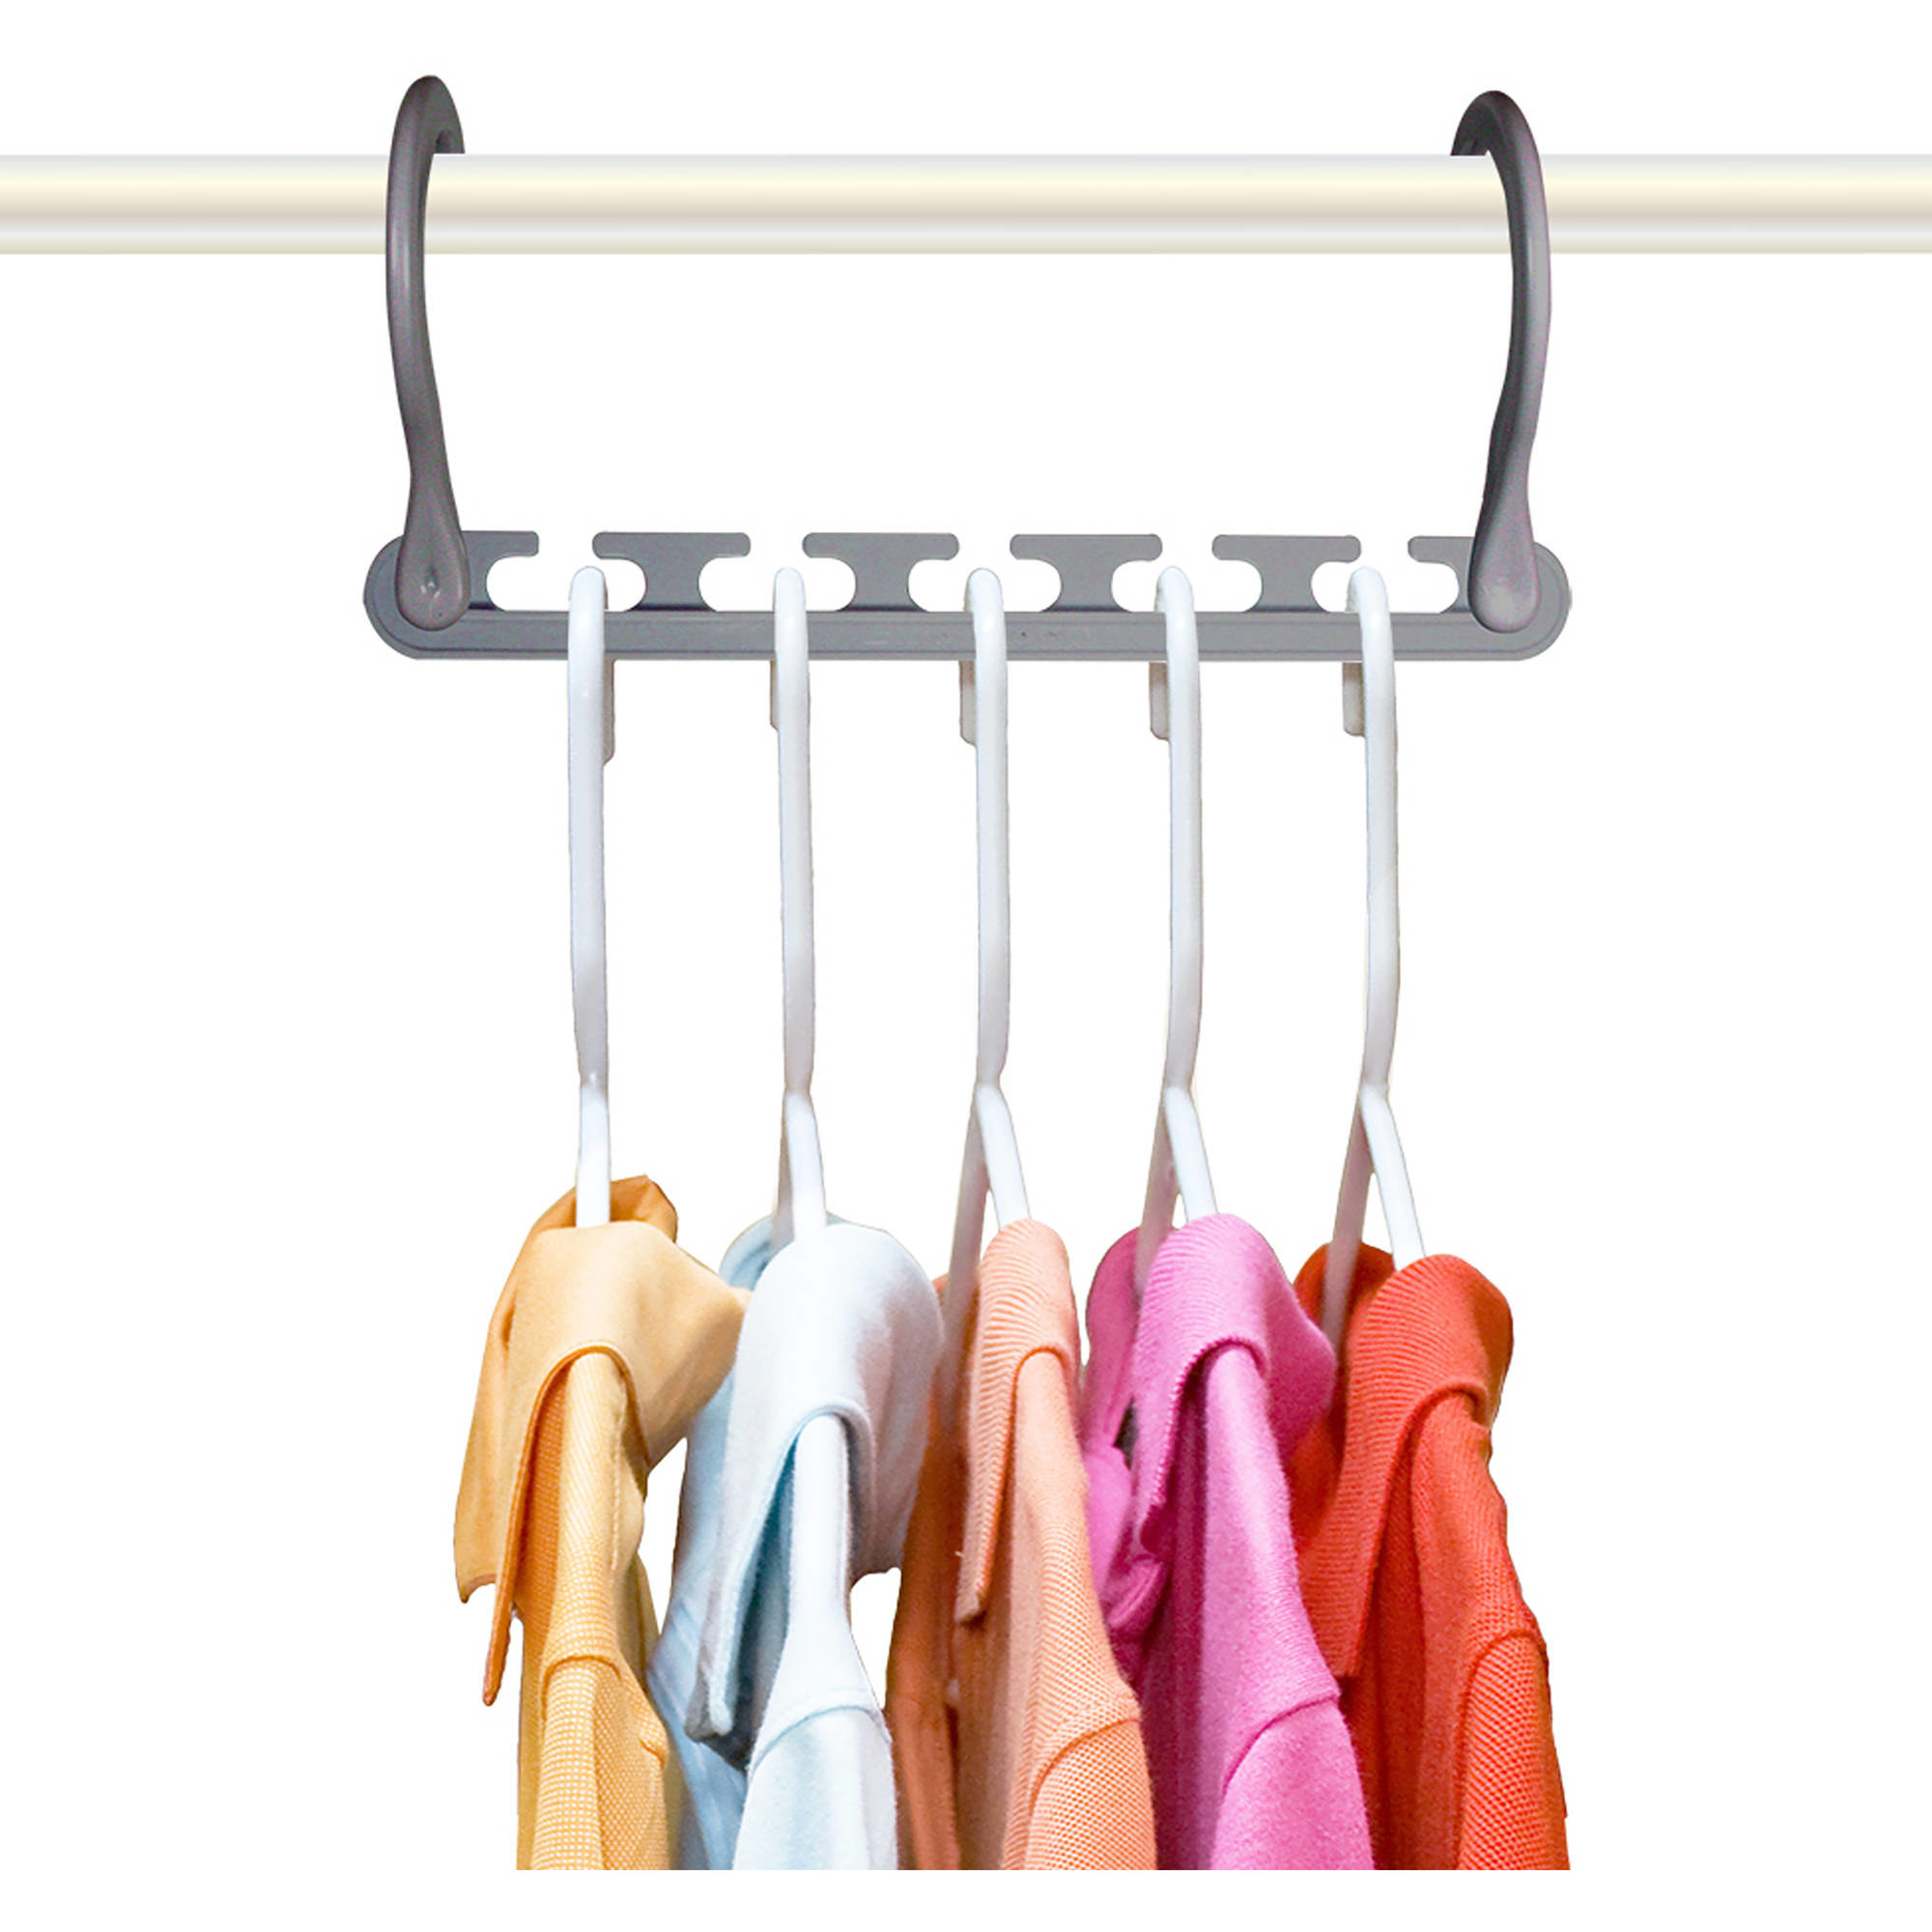 One hanger holding 5 different shirts